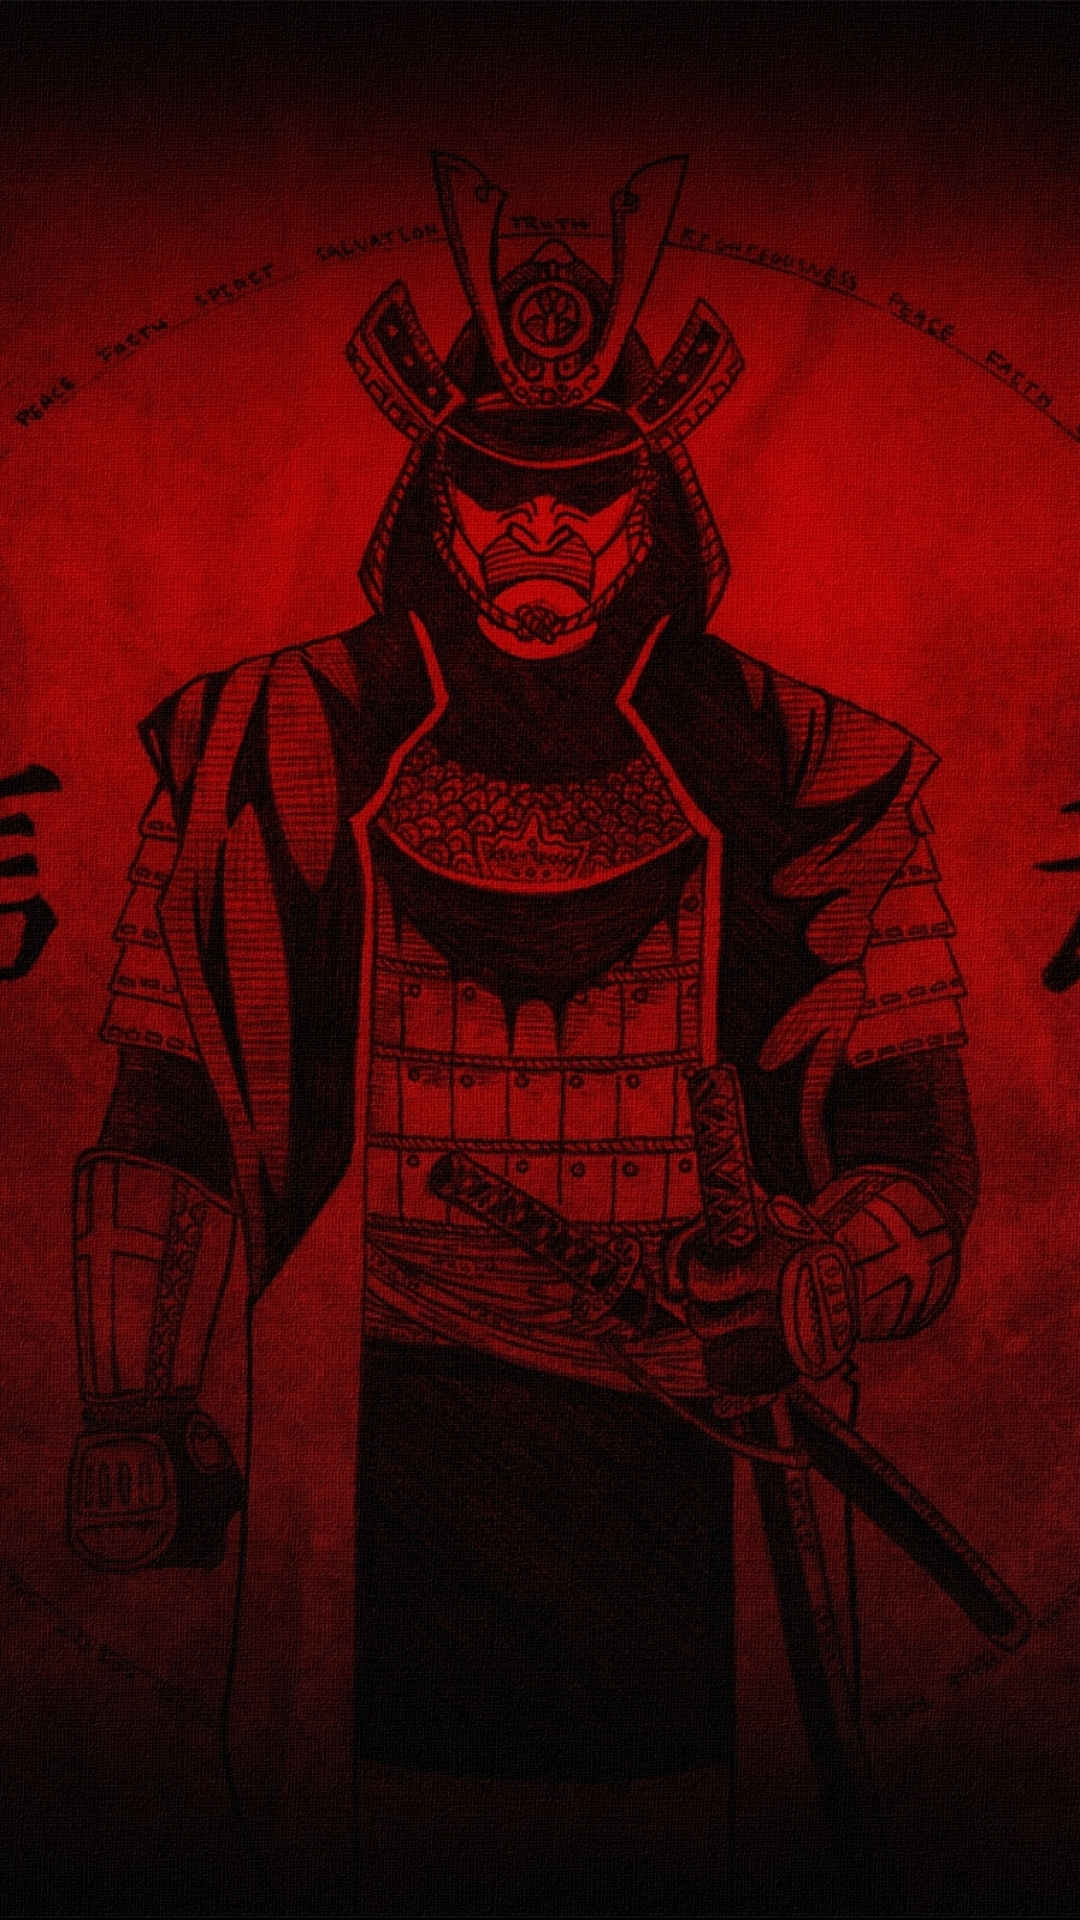 Samurai Wallpaper Iphone 6 Fitrini S Wallpaper